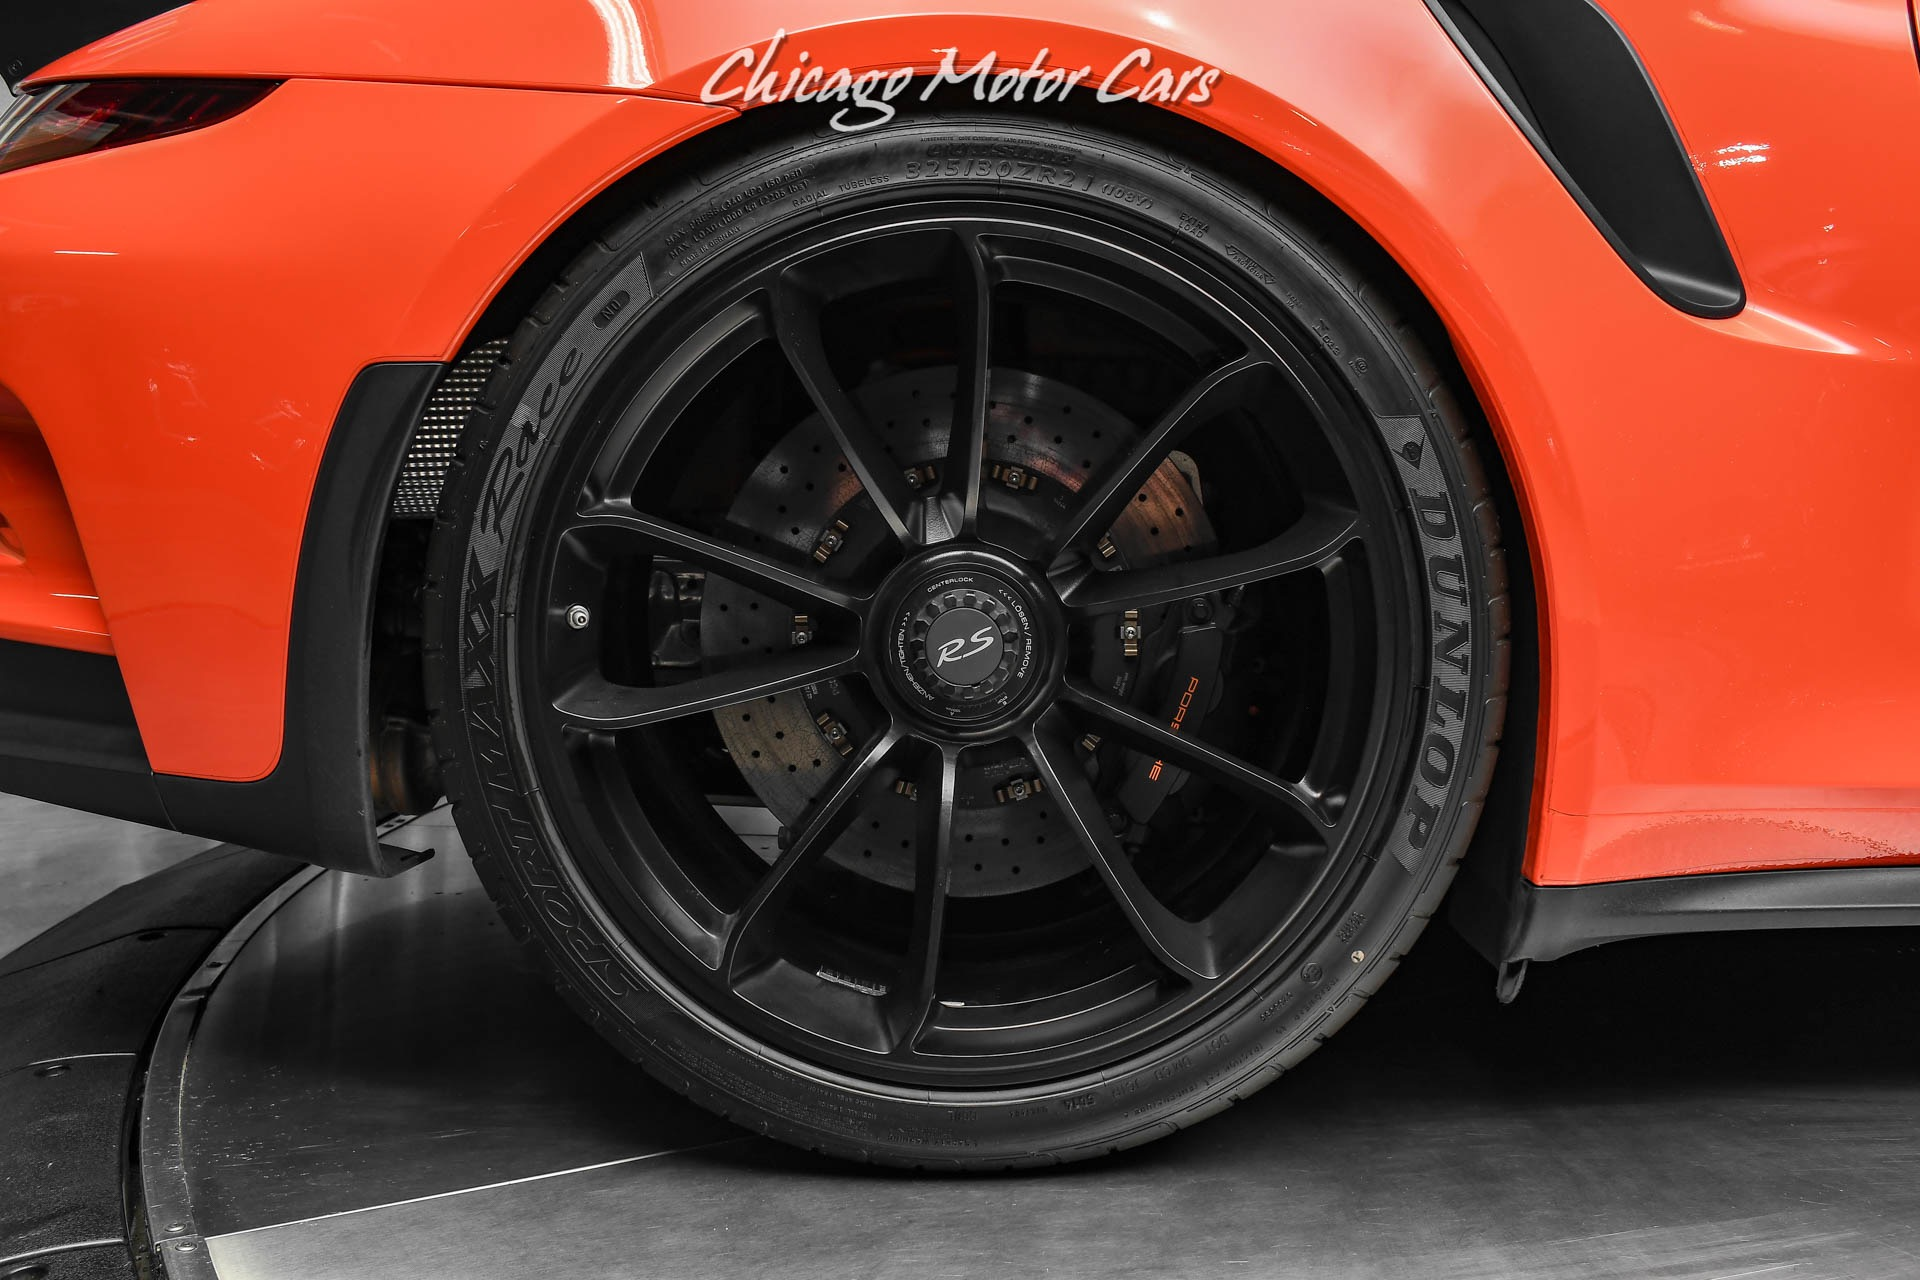 Used-2016-Porsche-911-GT3-RS-Coupe-RARE-Comfort-Seats-Front-Axle-Lift-PCCB